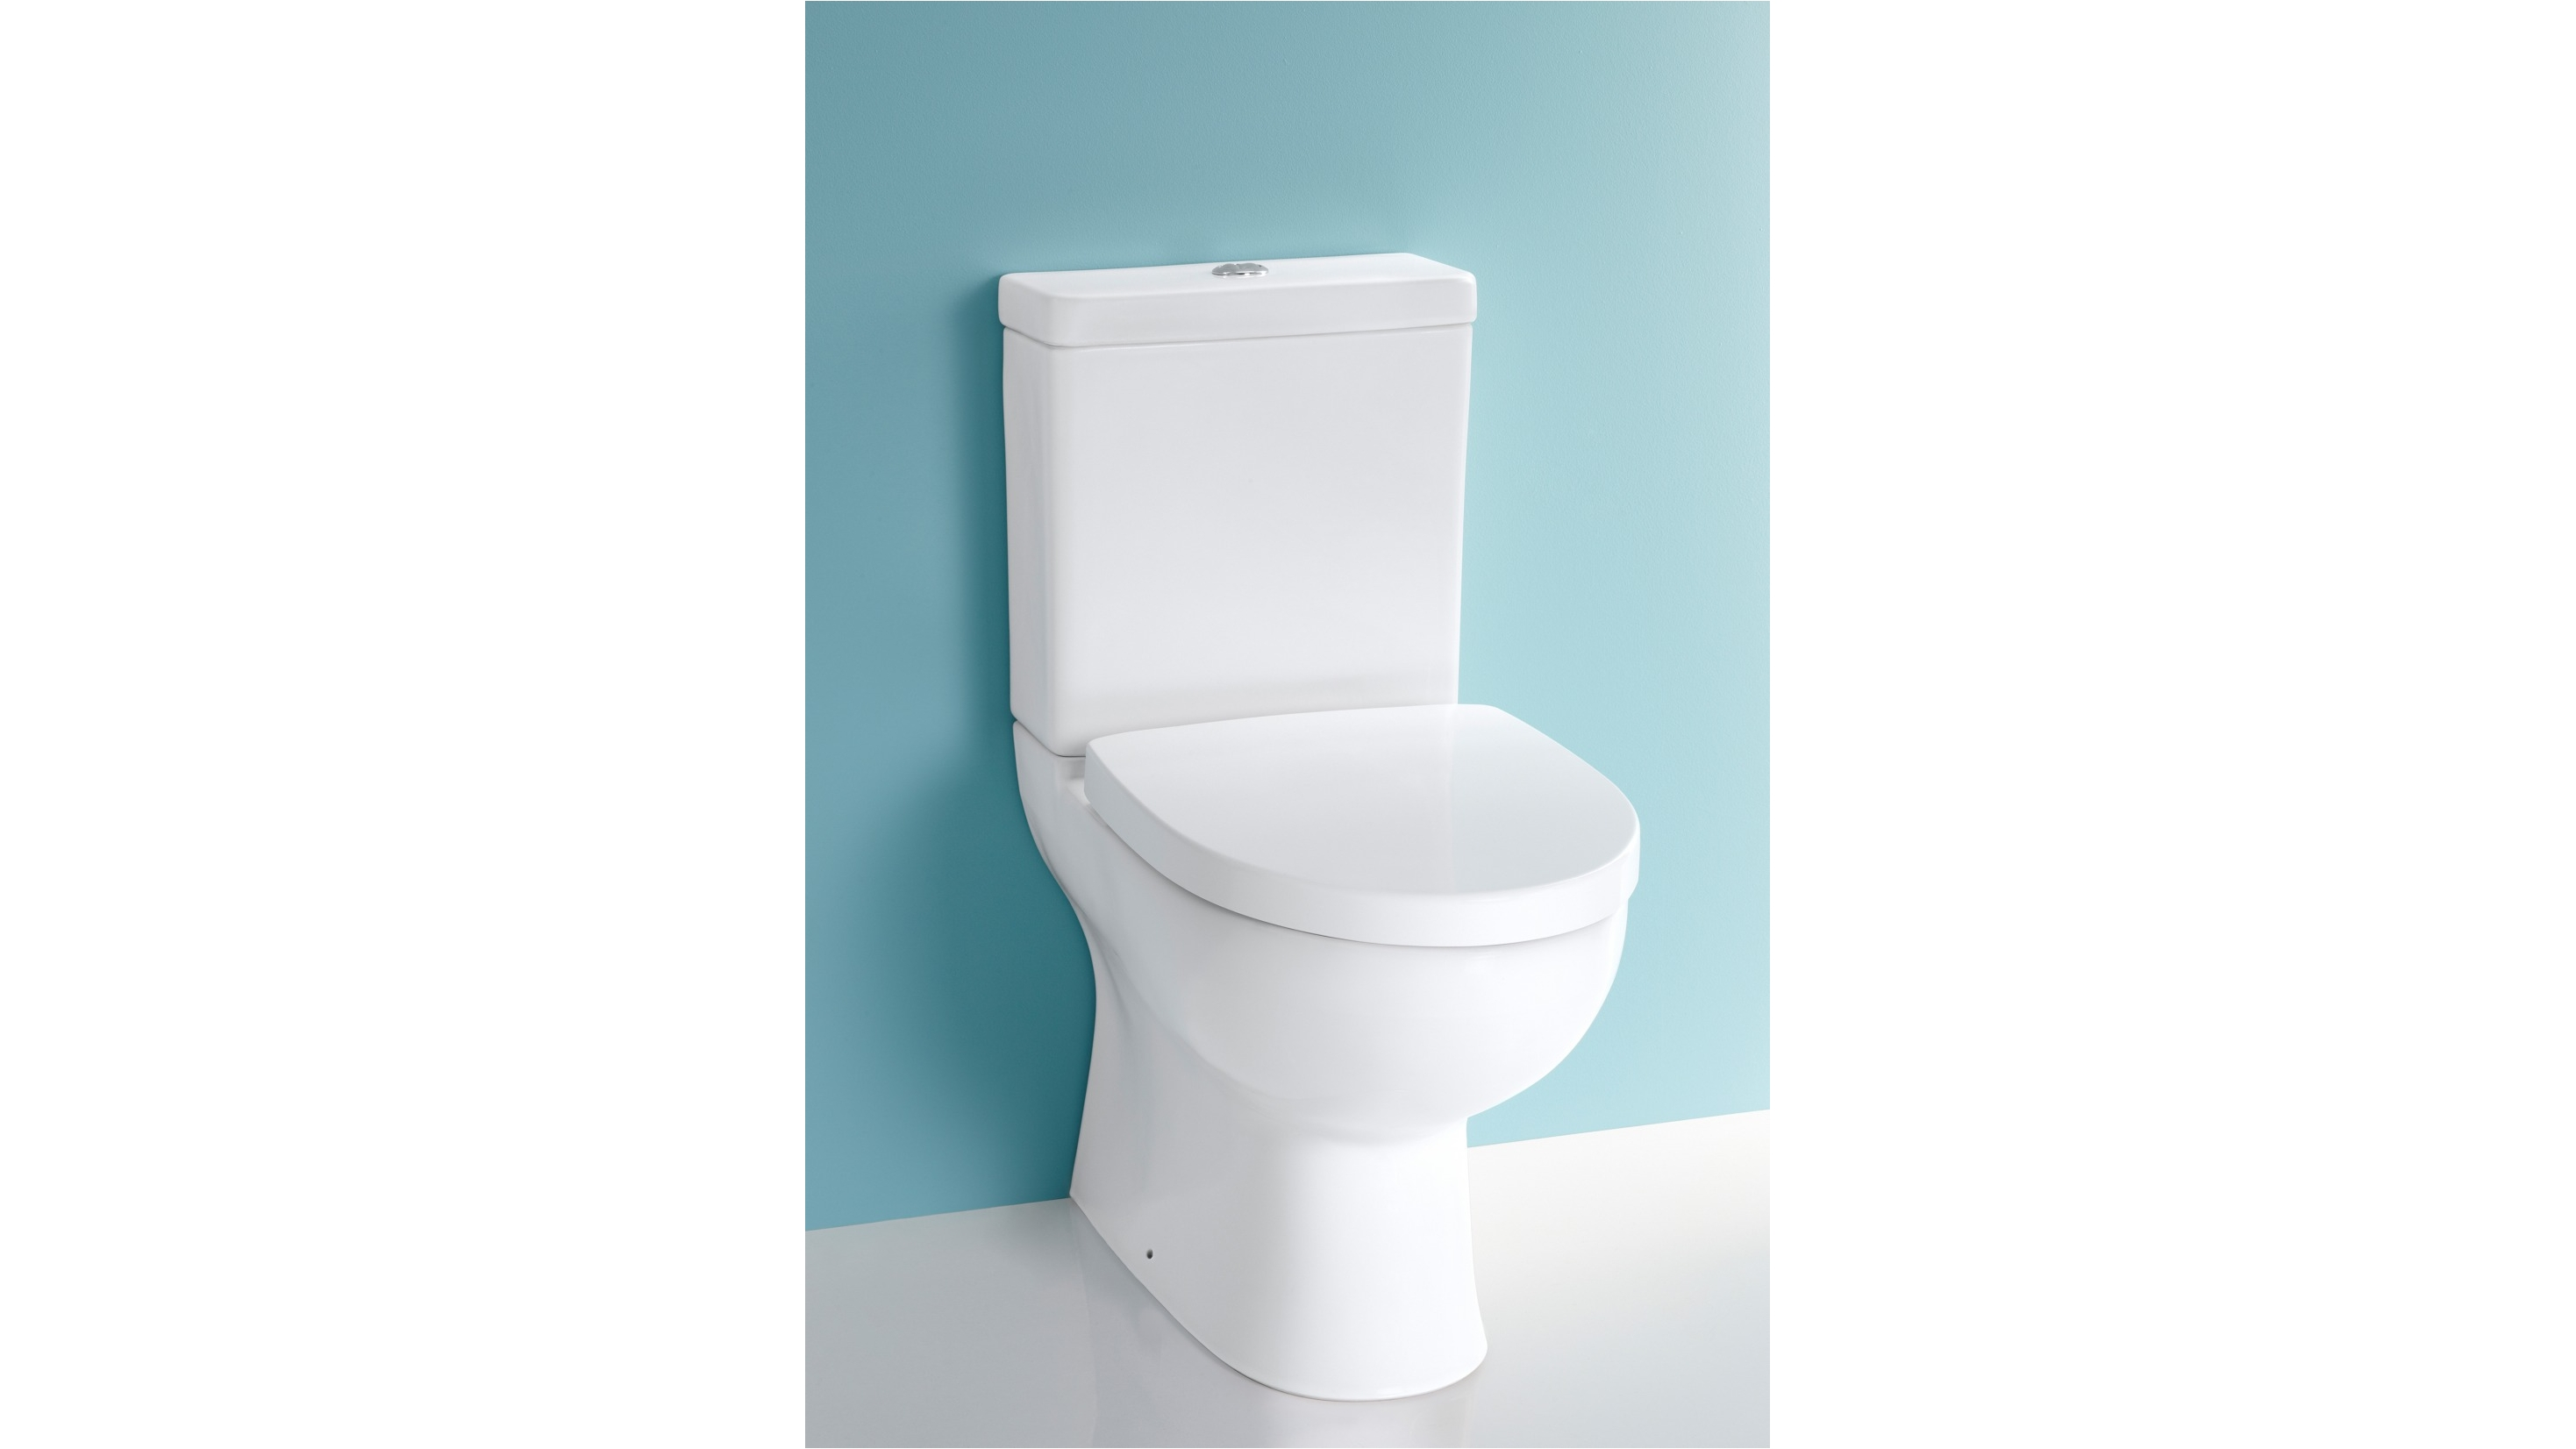 Buy Kohler Parliament Back to Wall Toilet | Harvey Norman AU